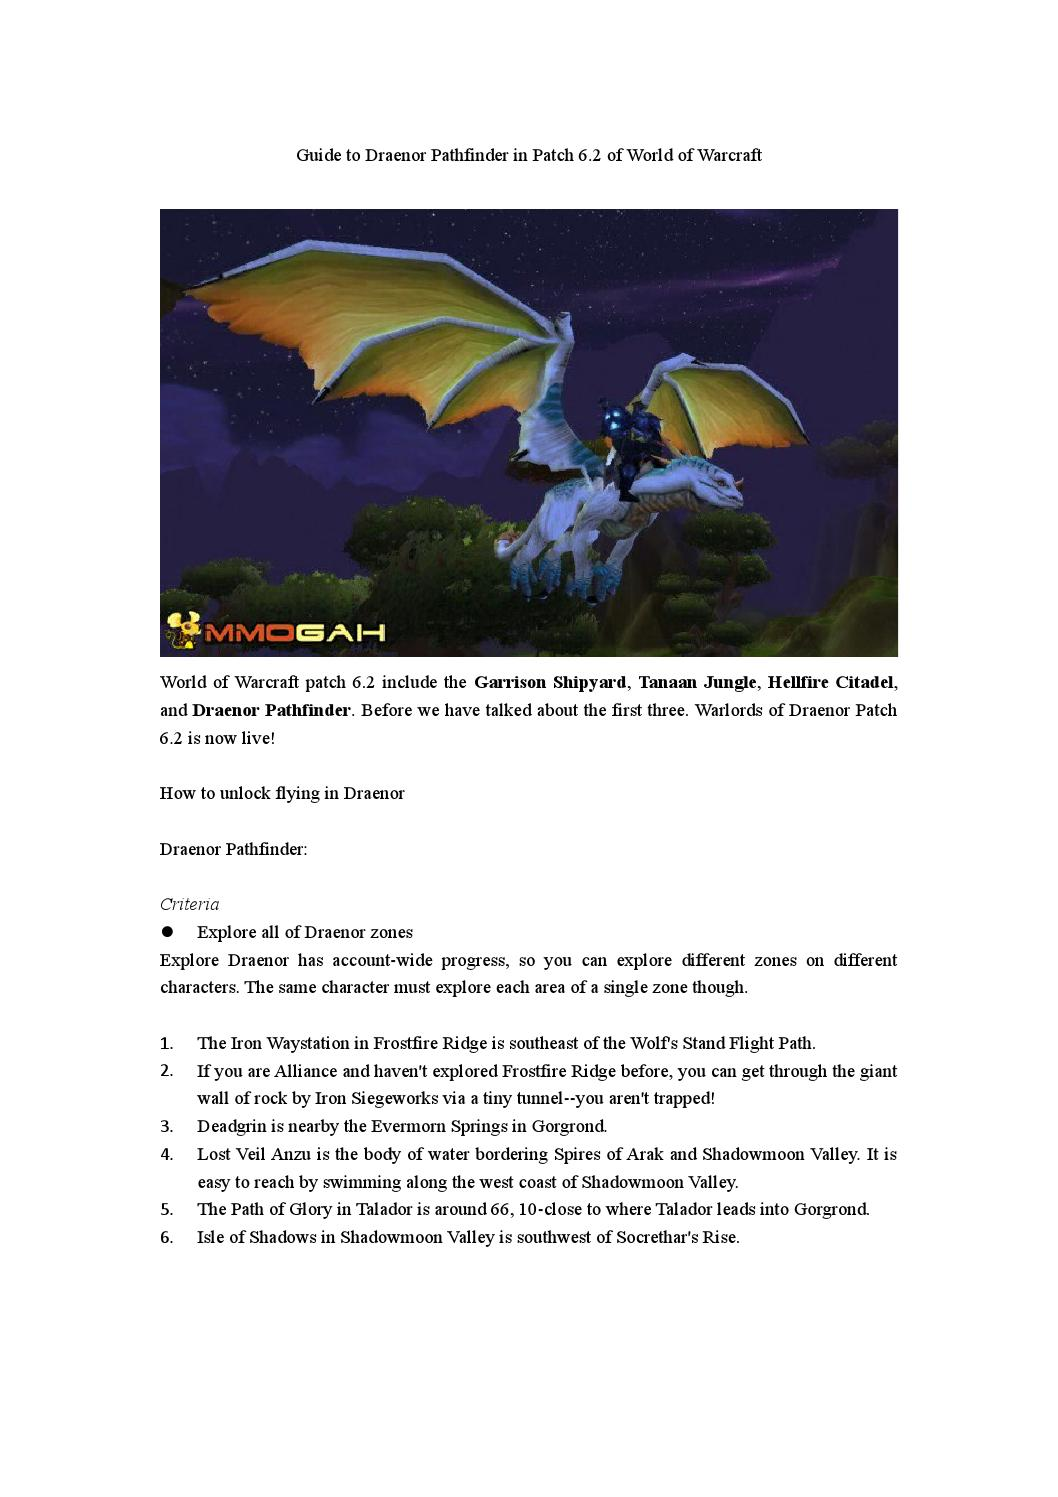 Lost Veil Anzu : Guide, Draenor, Pathfinder, Patch, World, Warcraft, Mmogh.com, Issuu